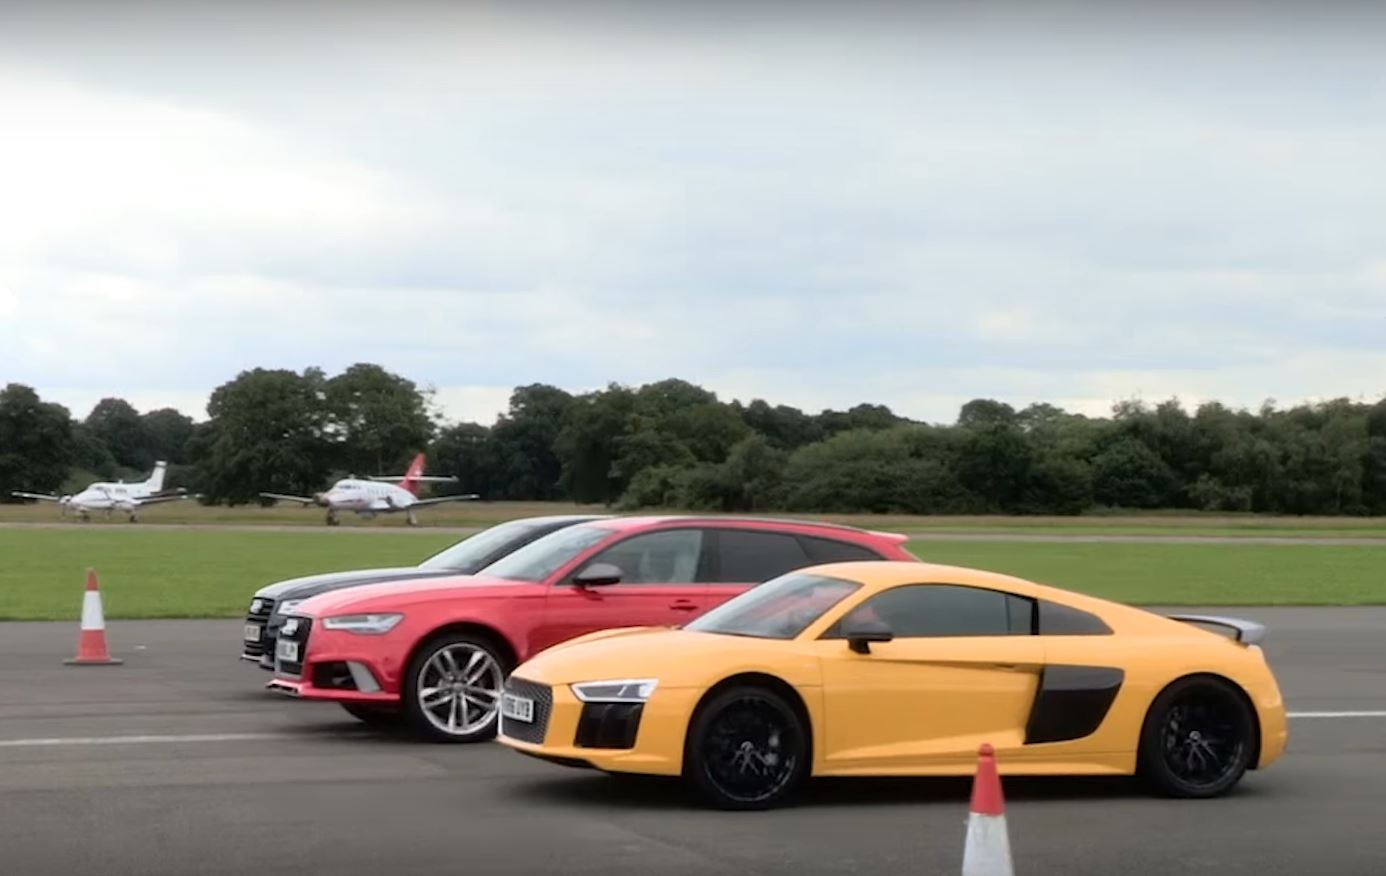 bugatti veyron youtube acceleration with Top Gear Drag Races Audi R8 V10 Plus Vs Audi Rs6 Vs Audi on Watch also Watch moreover Watch besides Watch also Bugatti Veyron Crystal Nature Sea Front Car.